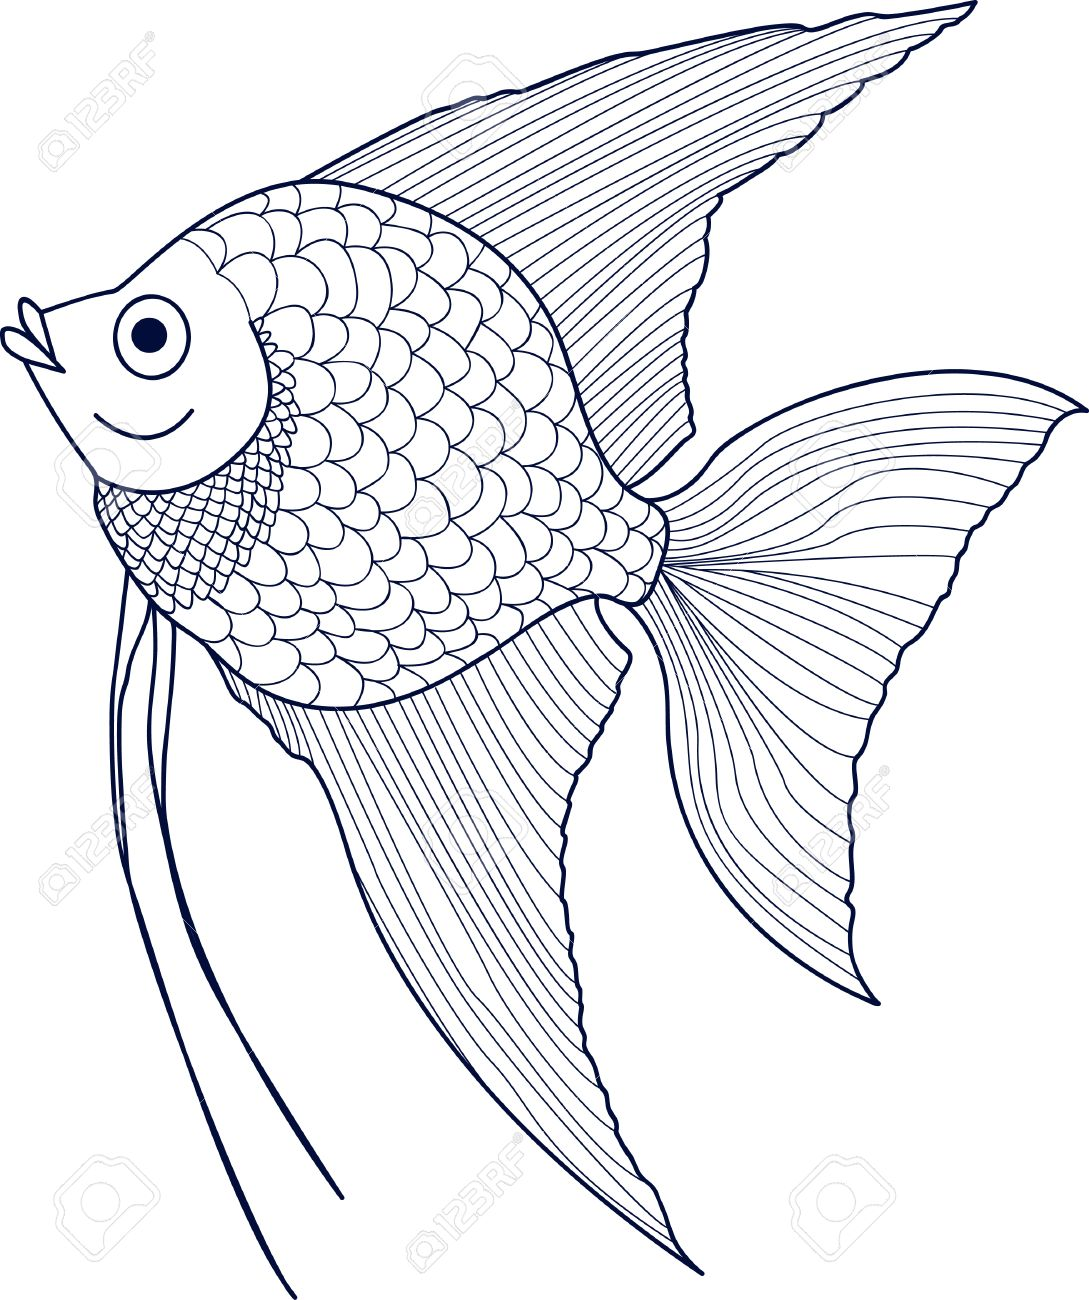 Scalar Sketch Of Aquarium Fish Vector Royalty Free Cliparts